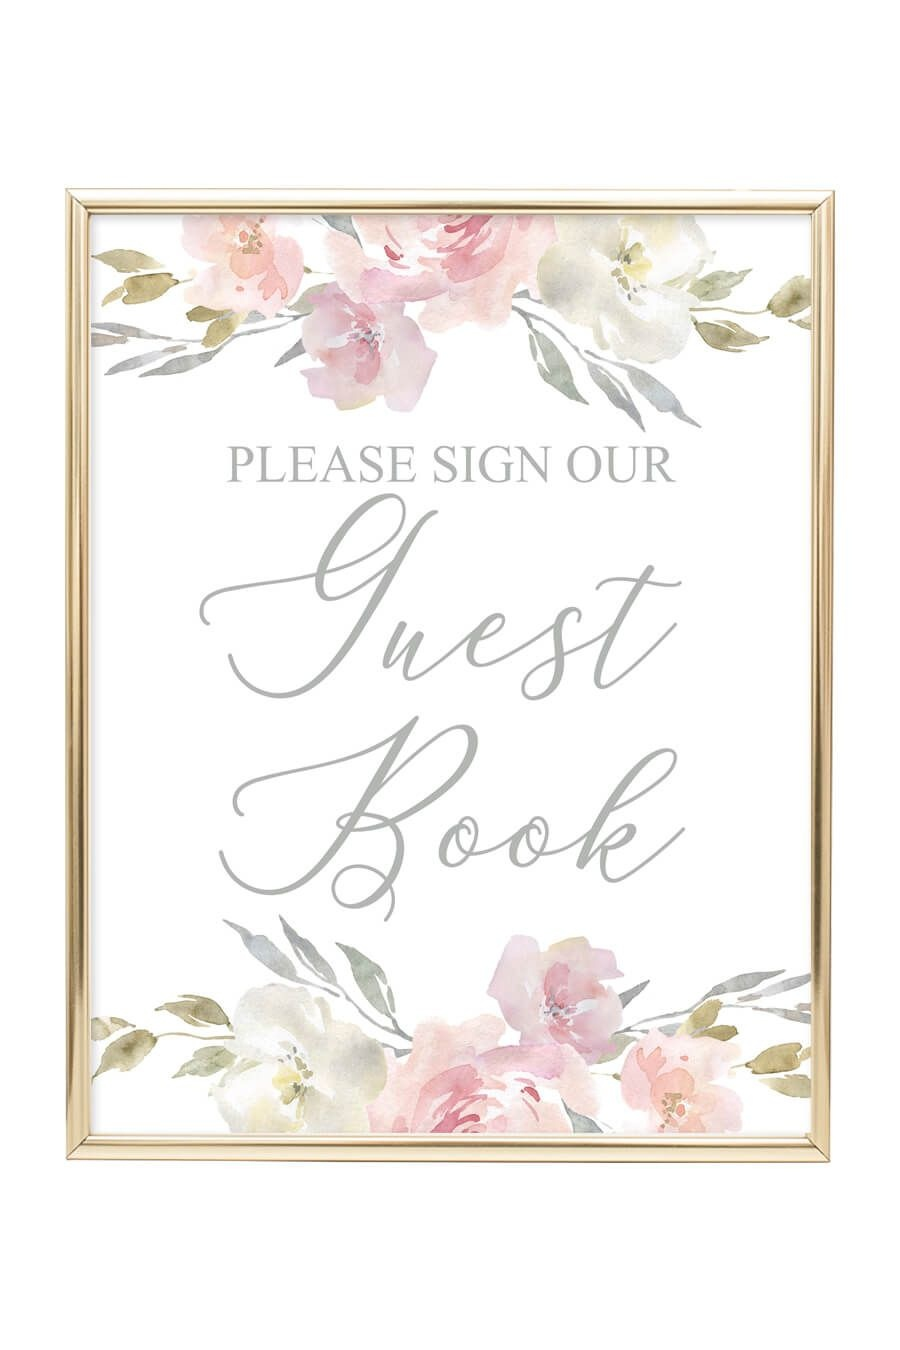 Guest Book Printable Sign (Blush Floral | Idei Pentru Nuntă - Please Sign Our Guestbook Free Printable